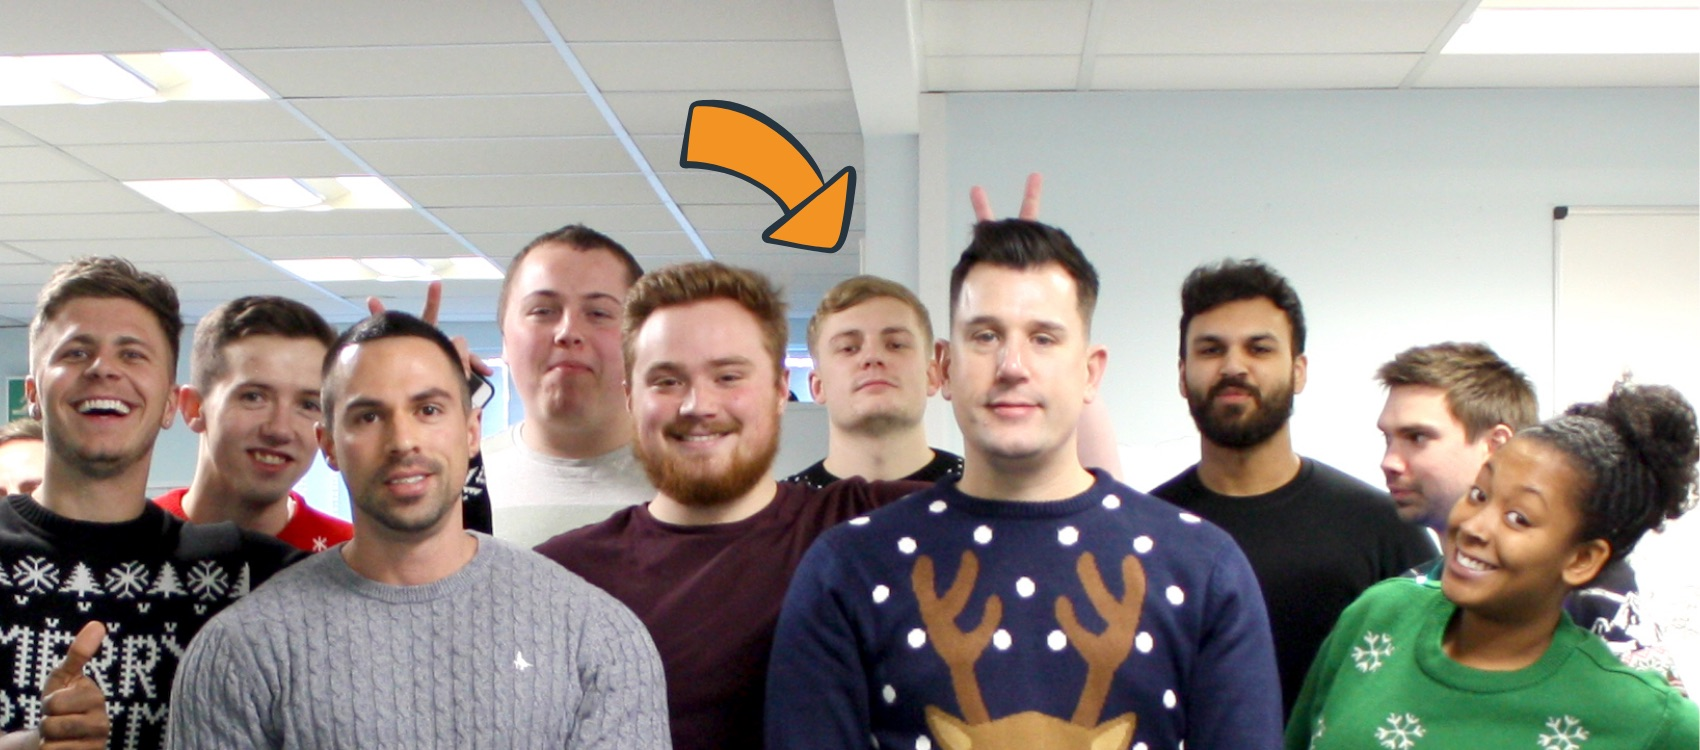 A fond farewell to our Developer Tom as he embarks on a new adventure